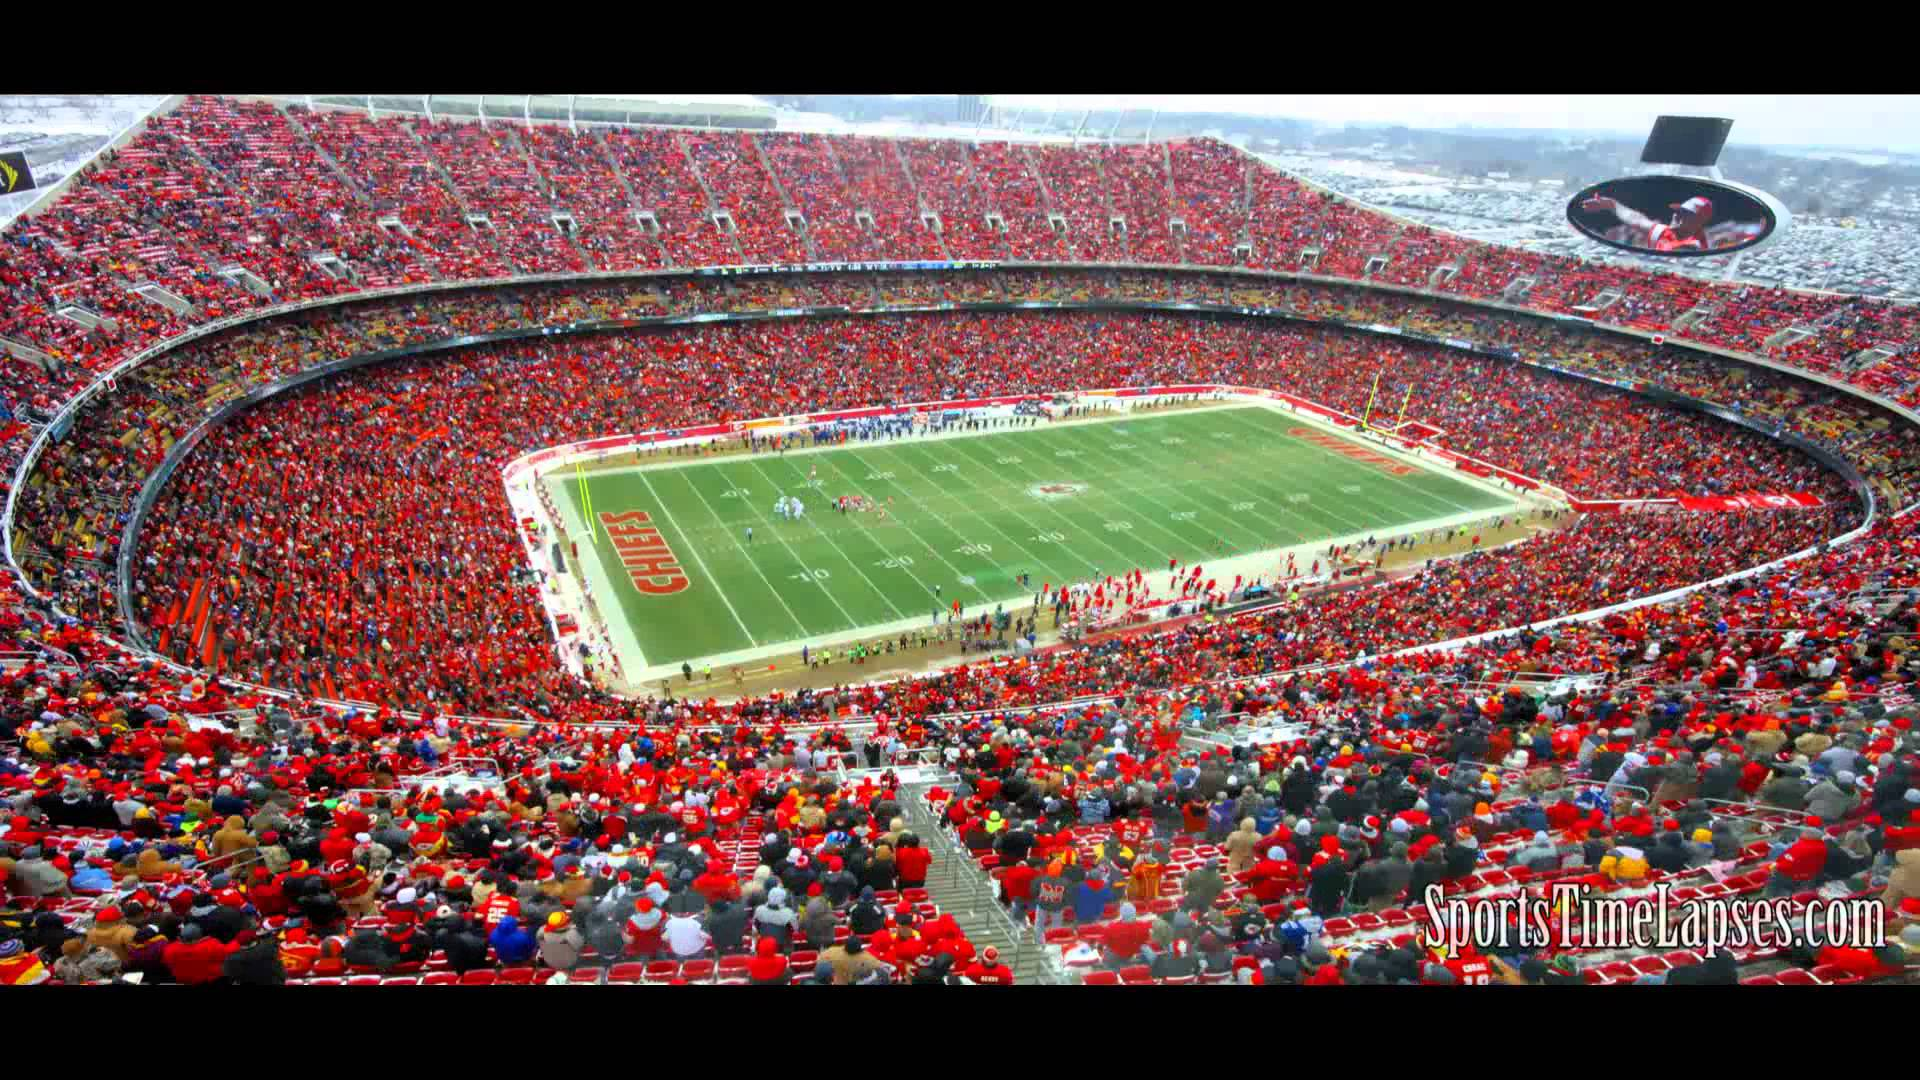 Arrowhead Stadium was completed in 1972 and holds the world record for the loudest stadium in professional sports.